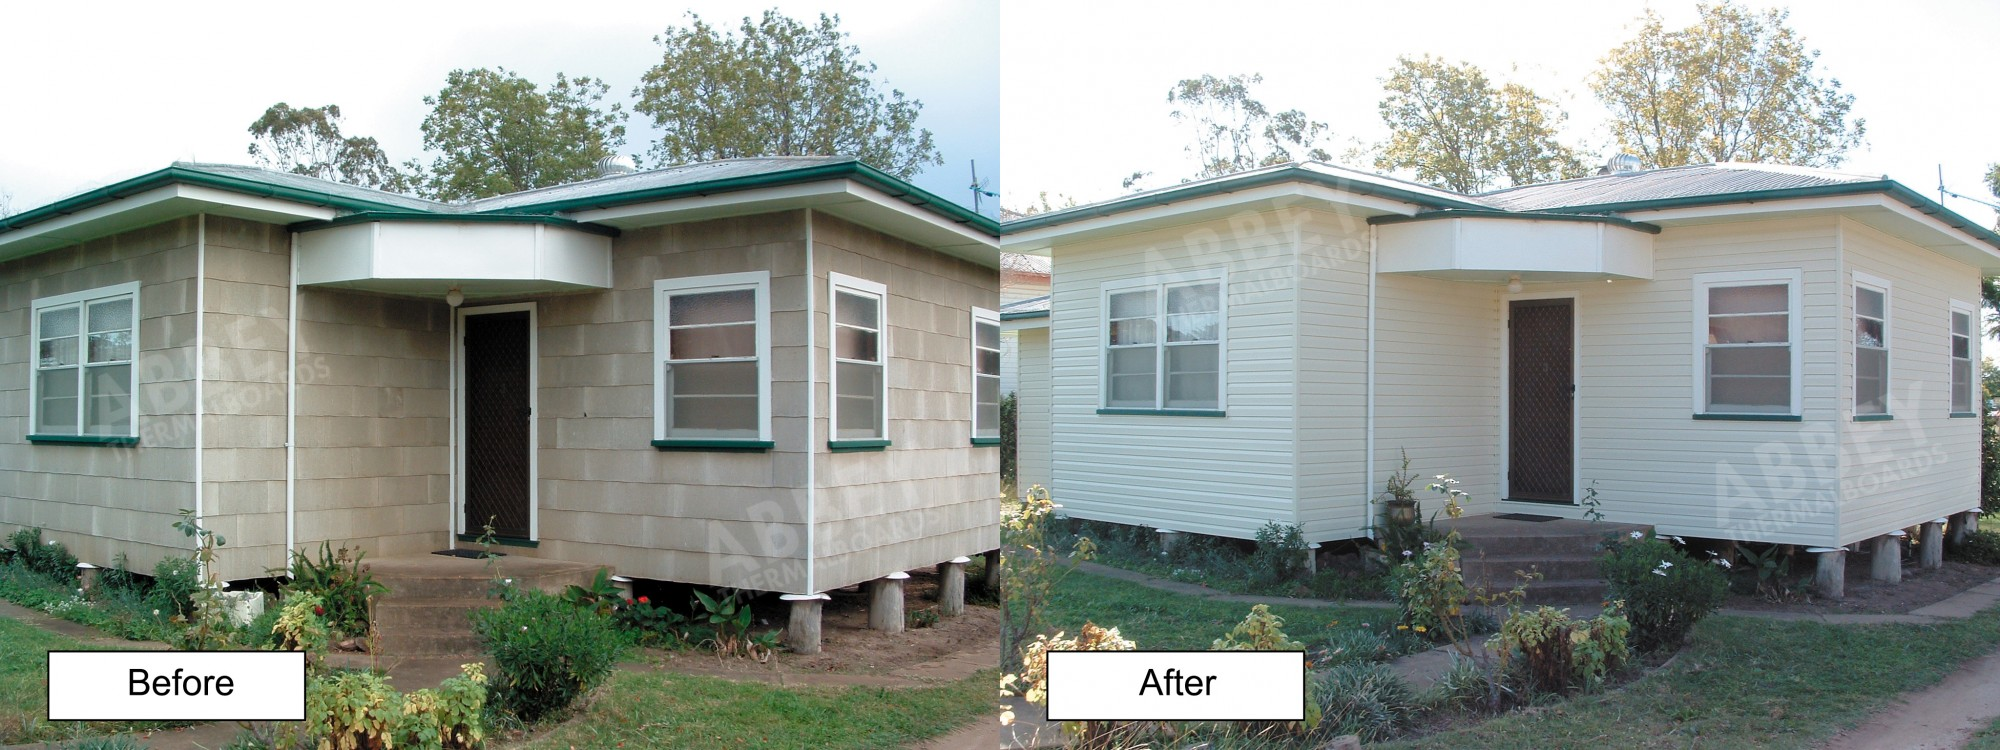 A before and after cladding job shot from a brick house.